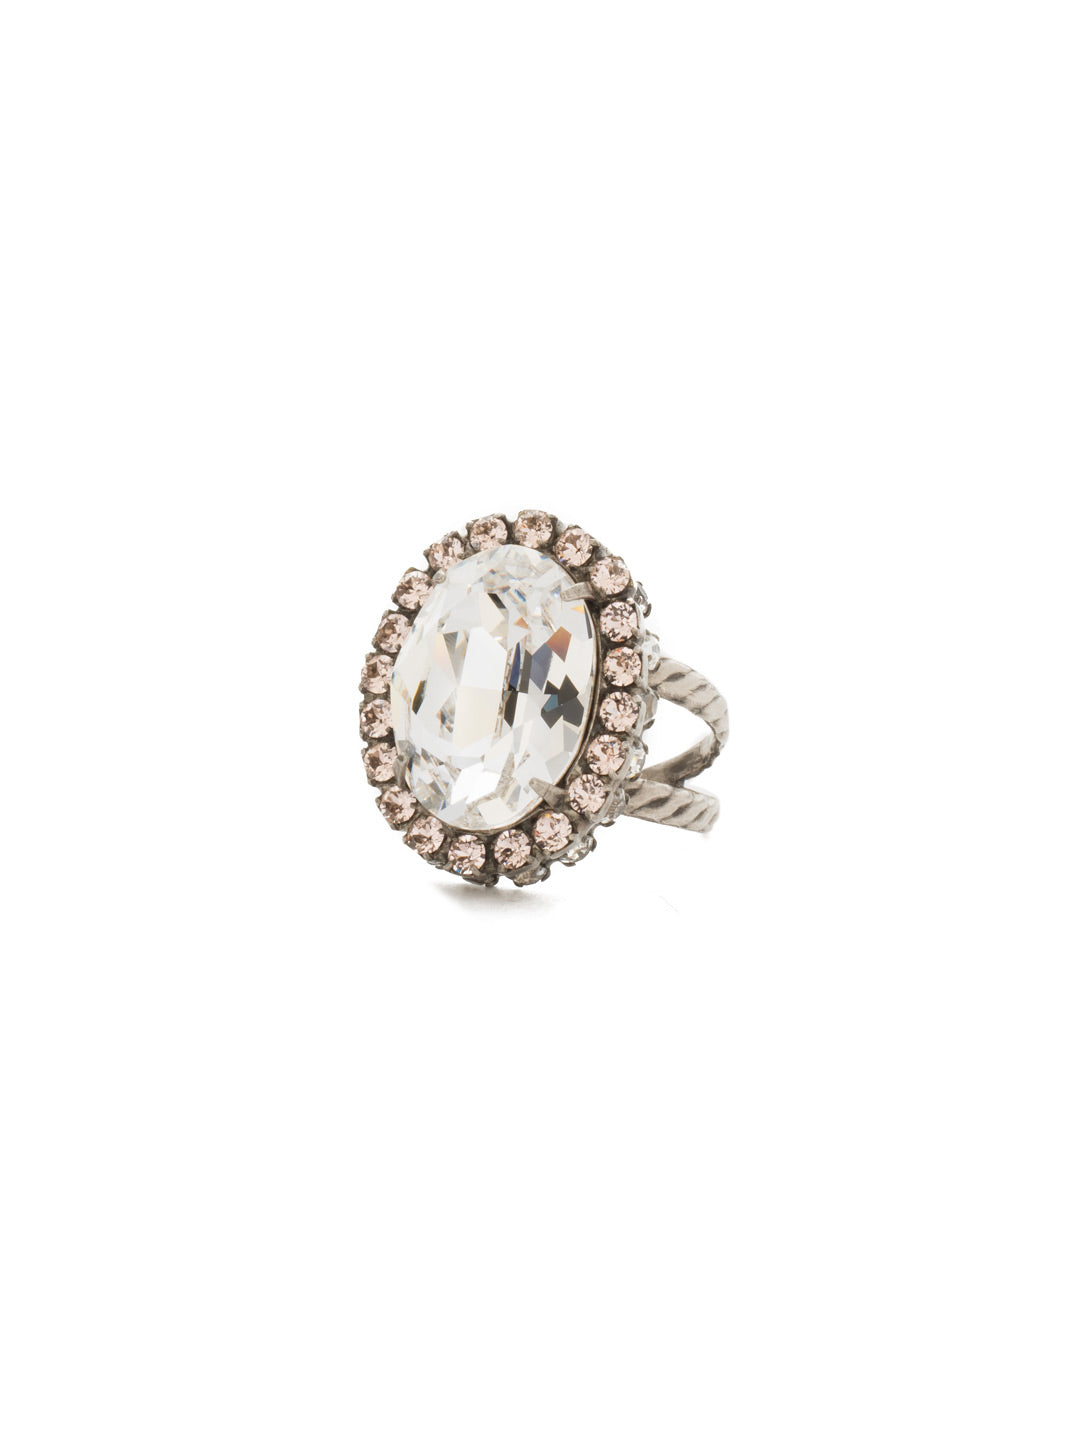 Glamorous Oval-Cut Cocktail Ring - RBT68ASSNB